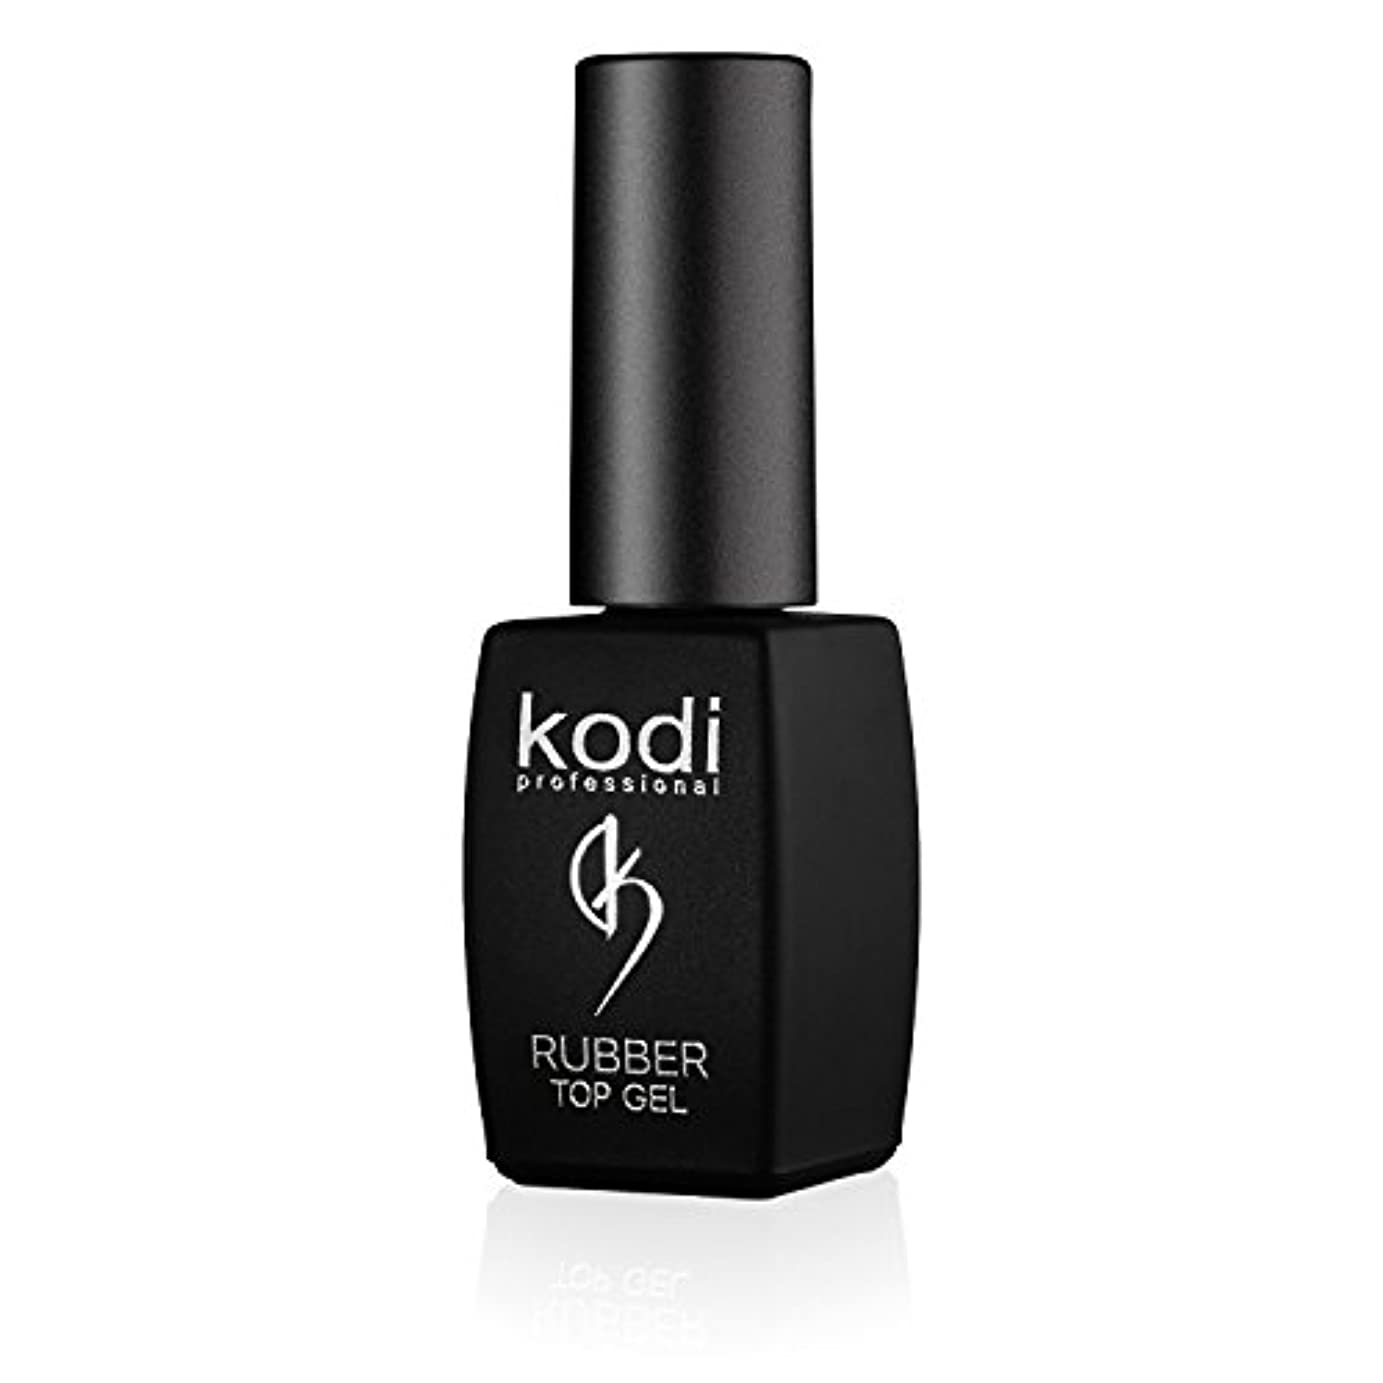 クリーク取り替える光沢のあるProfessional Rubber Top Gel By Kodi | 8ml 0.27 oz | Soak Off, Polish Fingernails Coat Kit | For Long Lasting Nails...